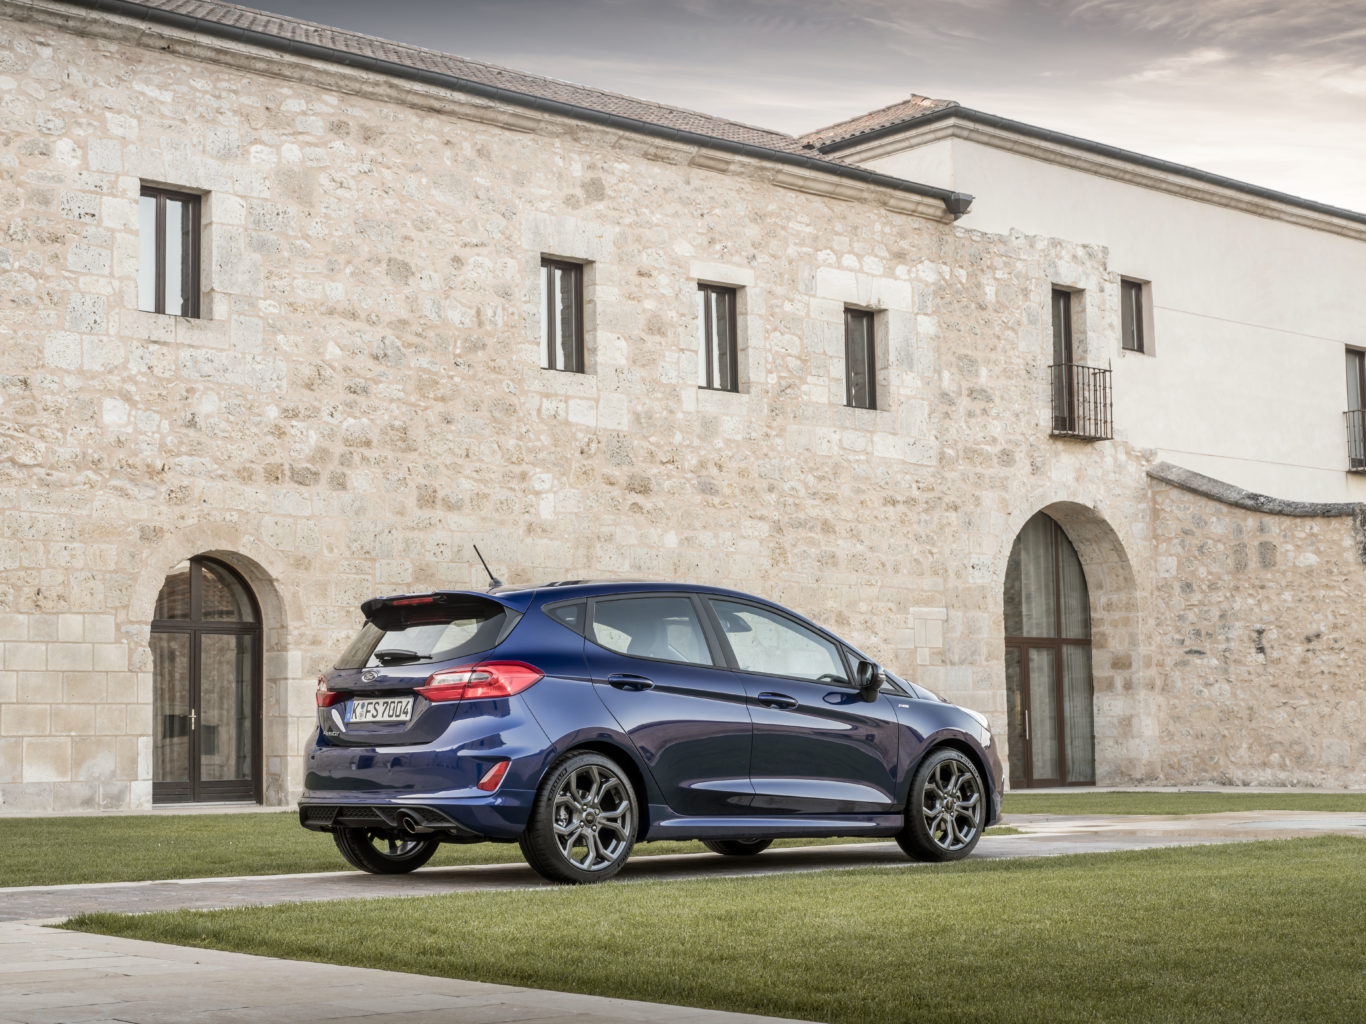 Uk Drive Ford S Fiesta St Line Offers Hot Hatch Fun Without As Much Compromise Shropshire Star